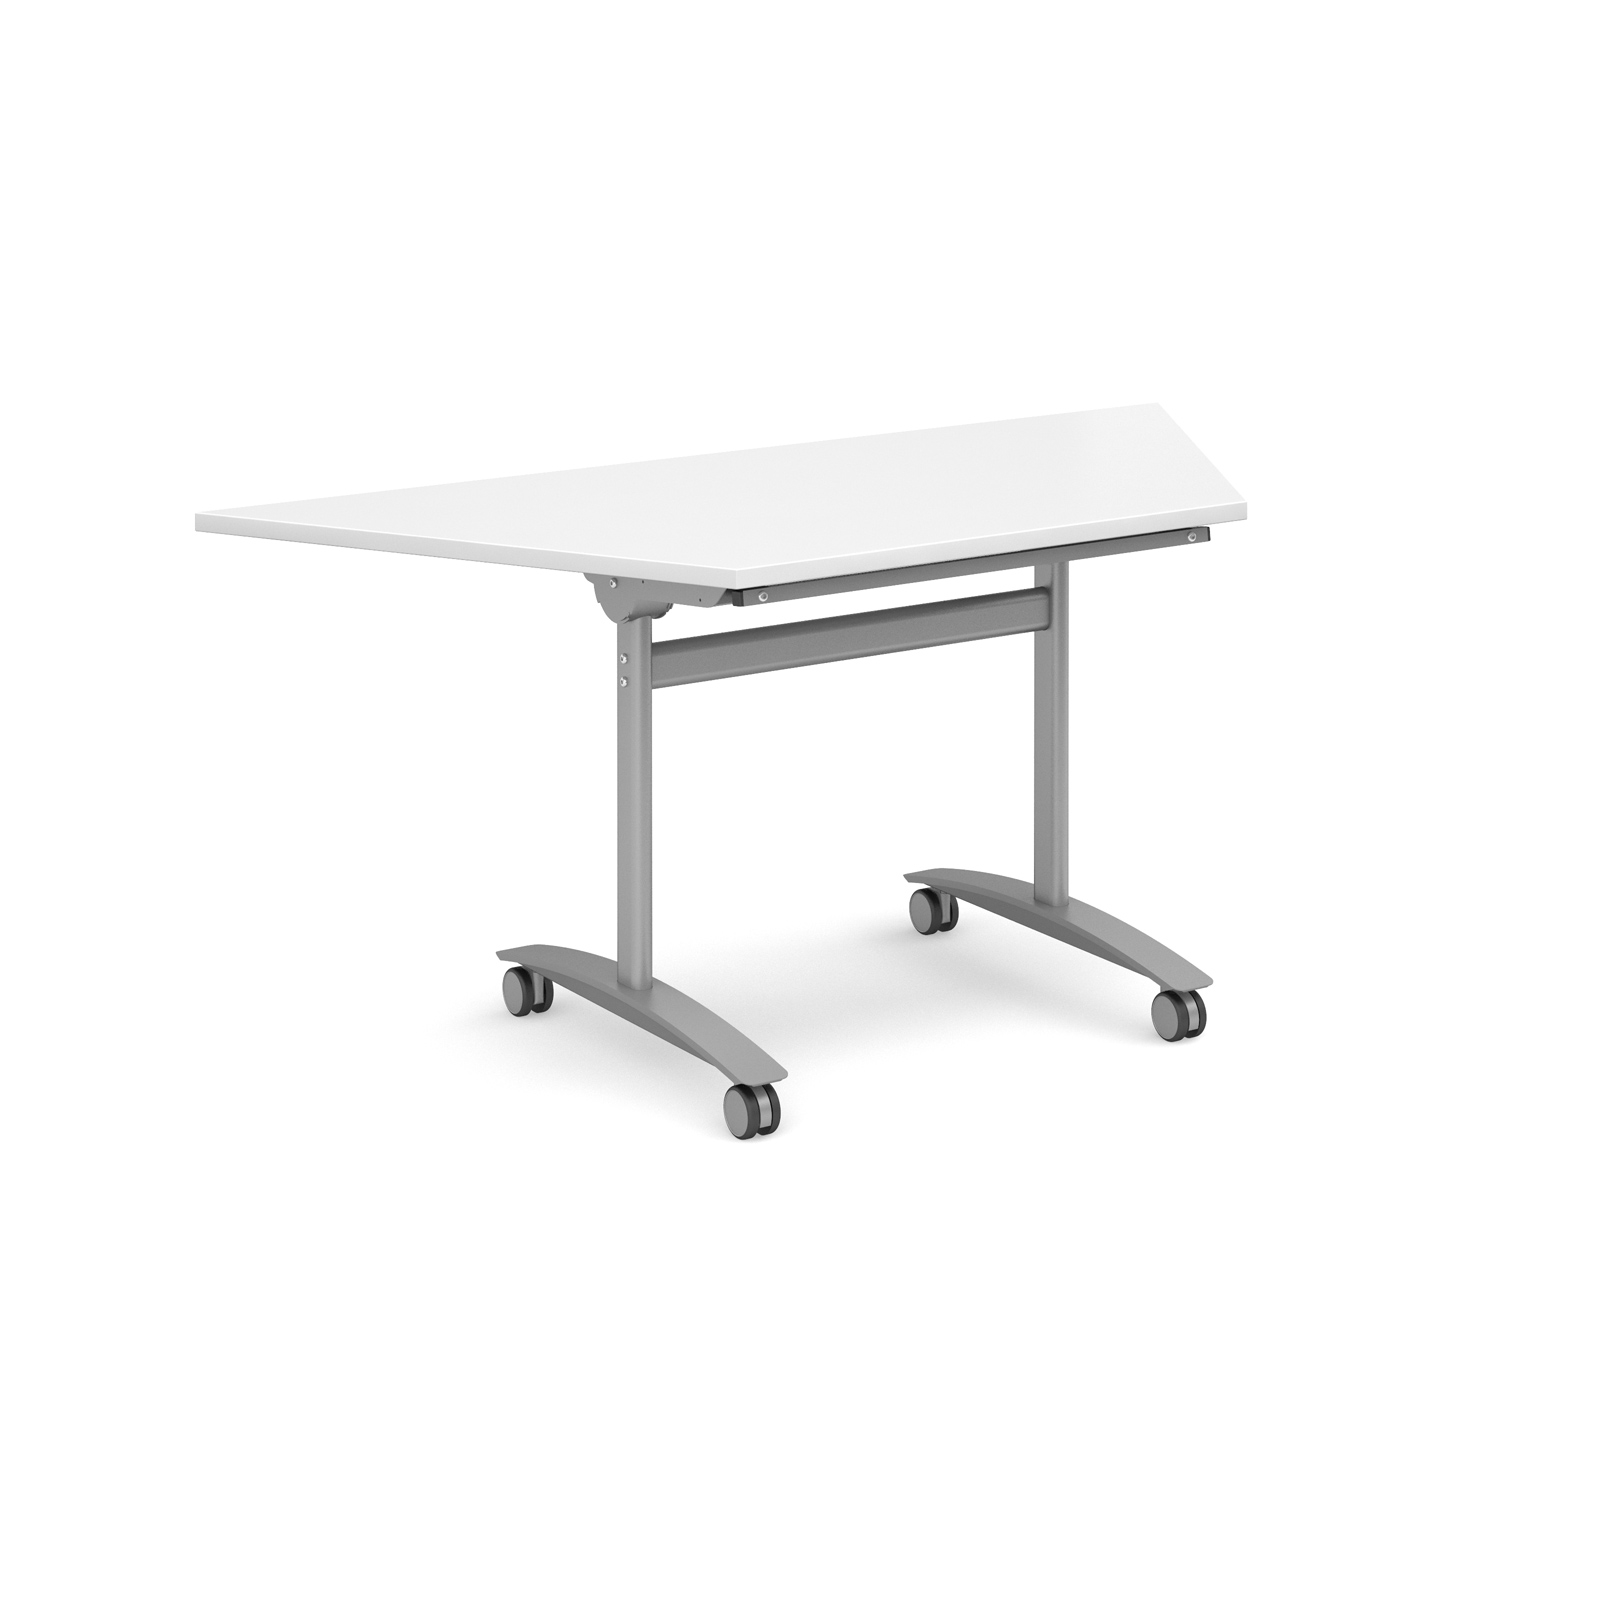 Active Fliptop Table | Trapezoidal